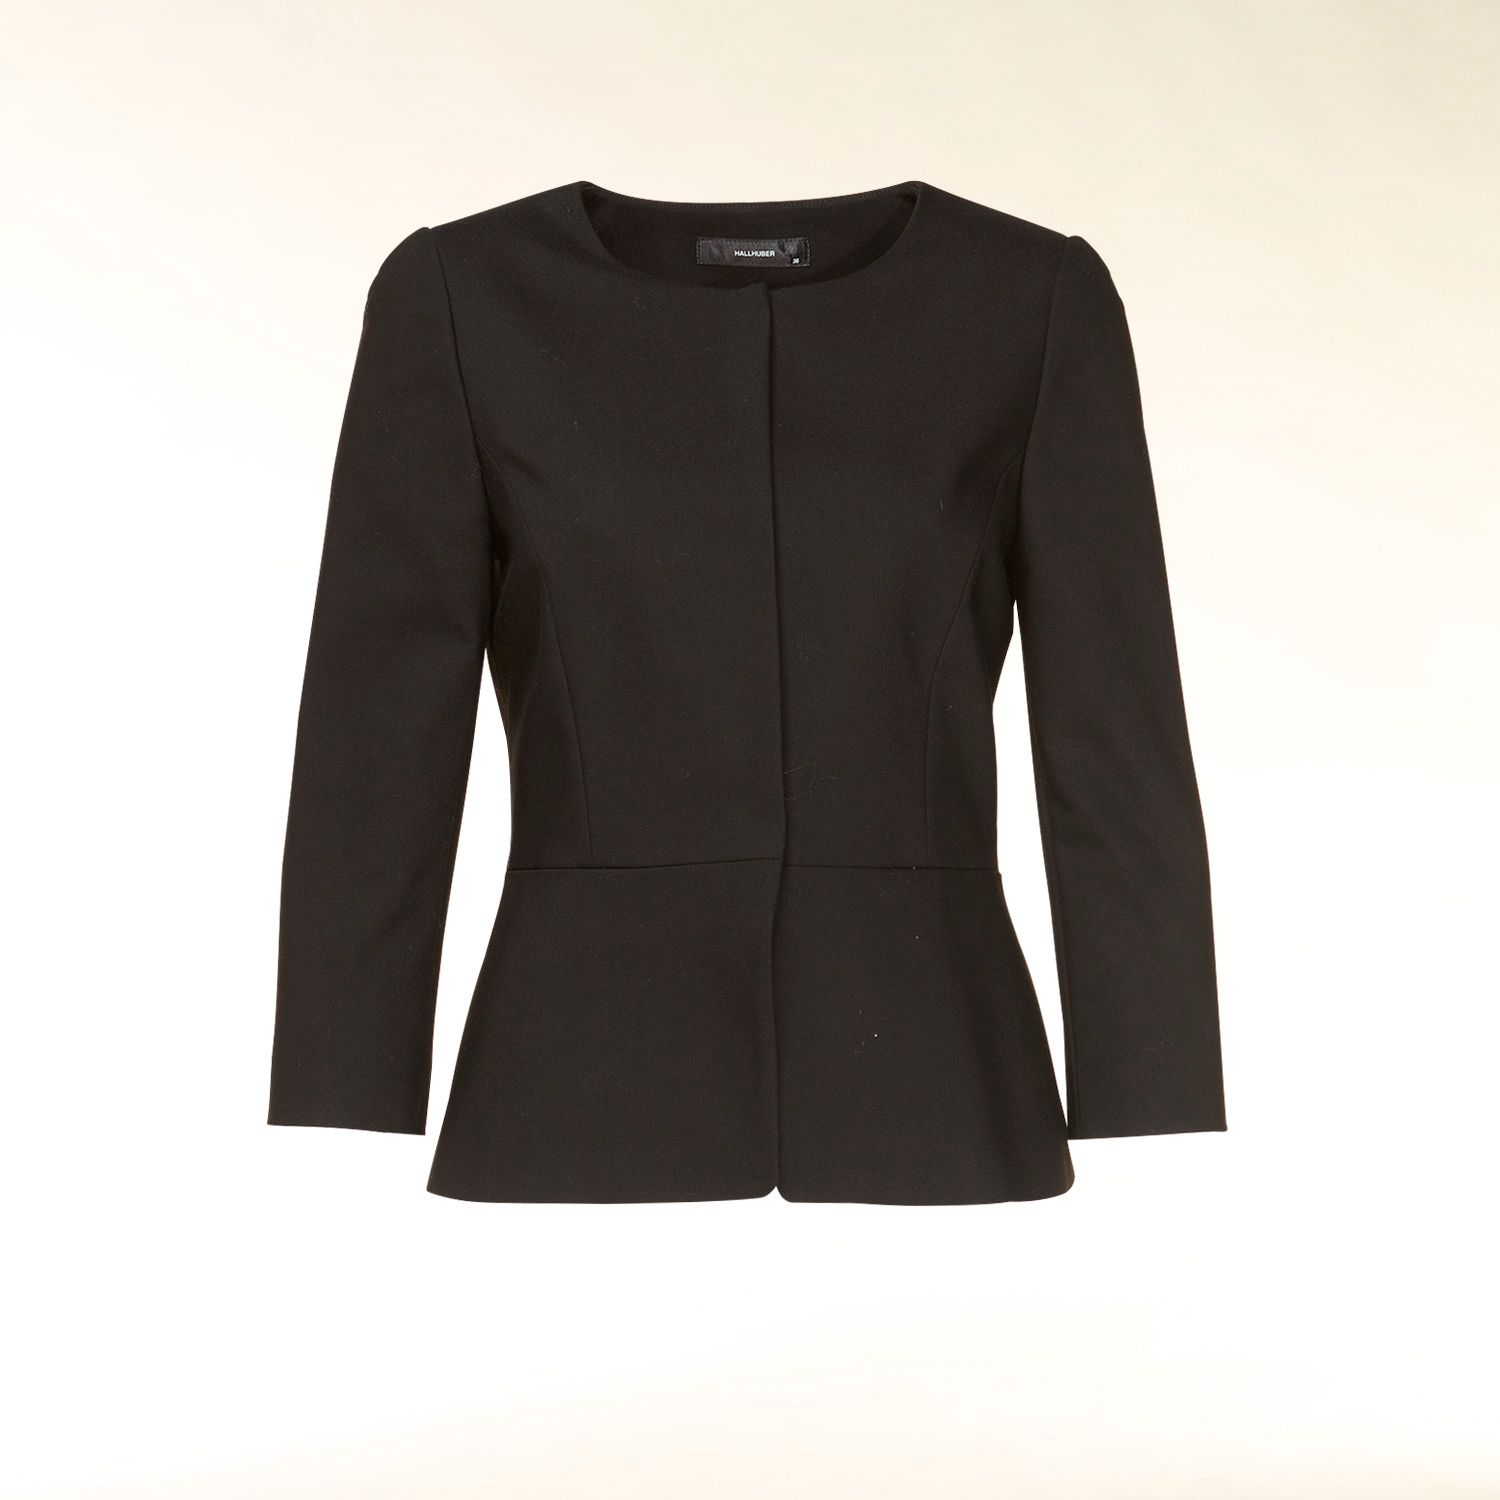 3/4 sleeve peplum detail jacket